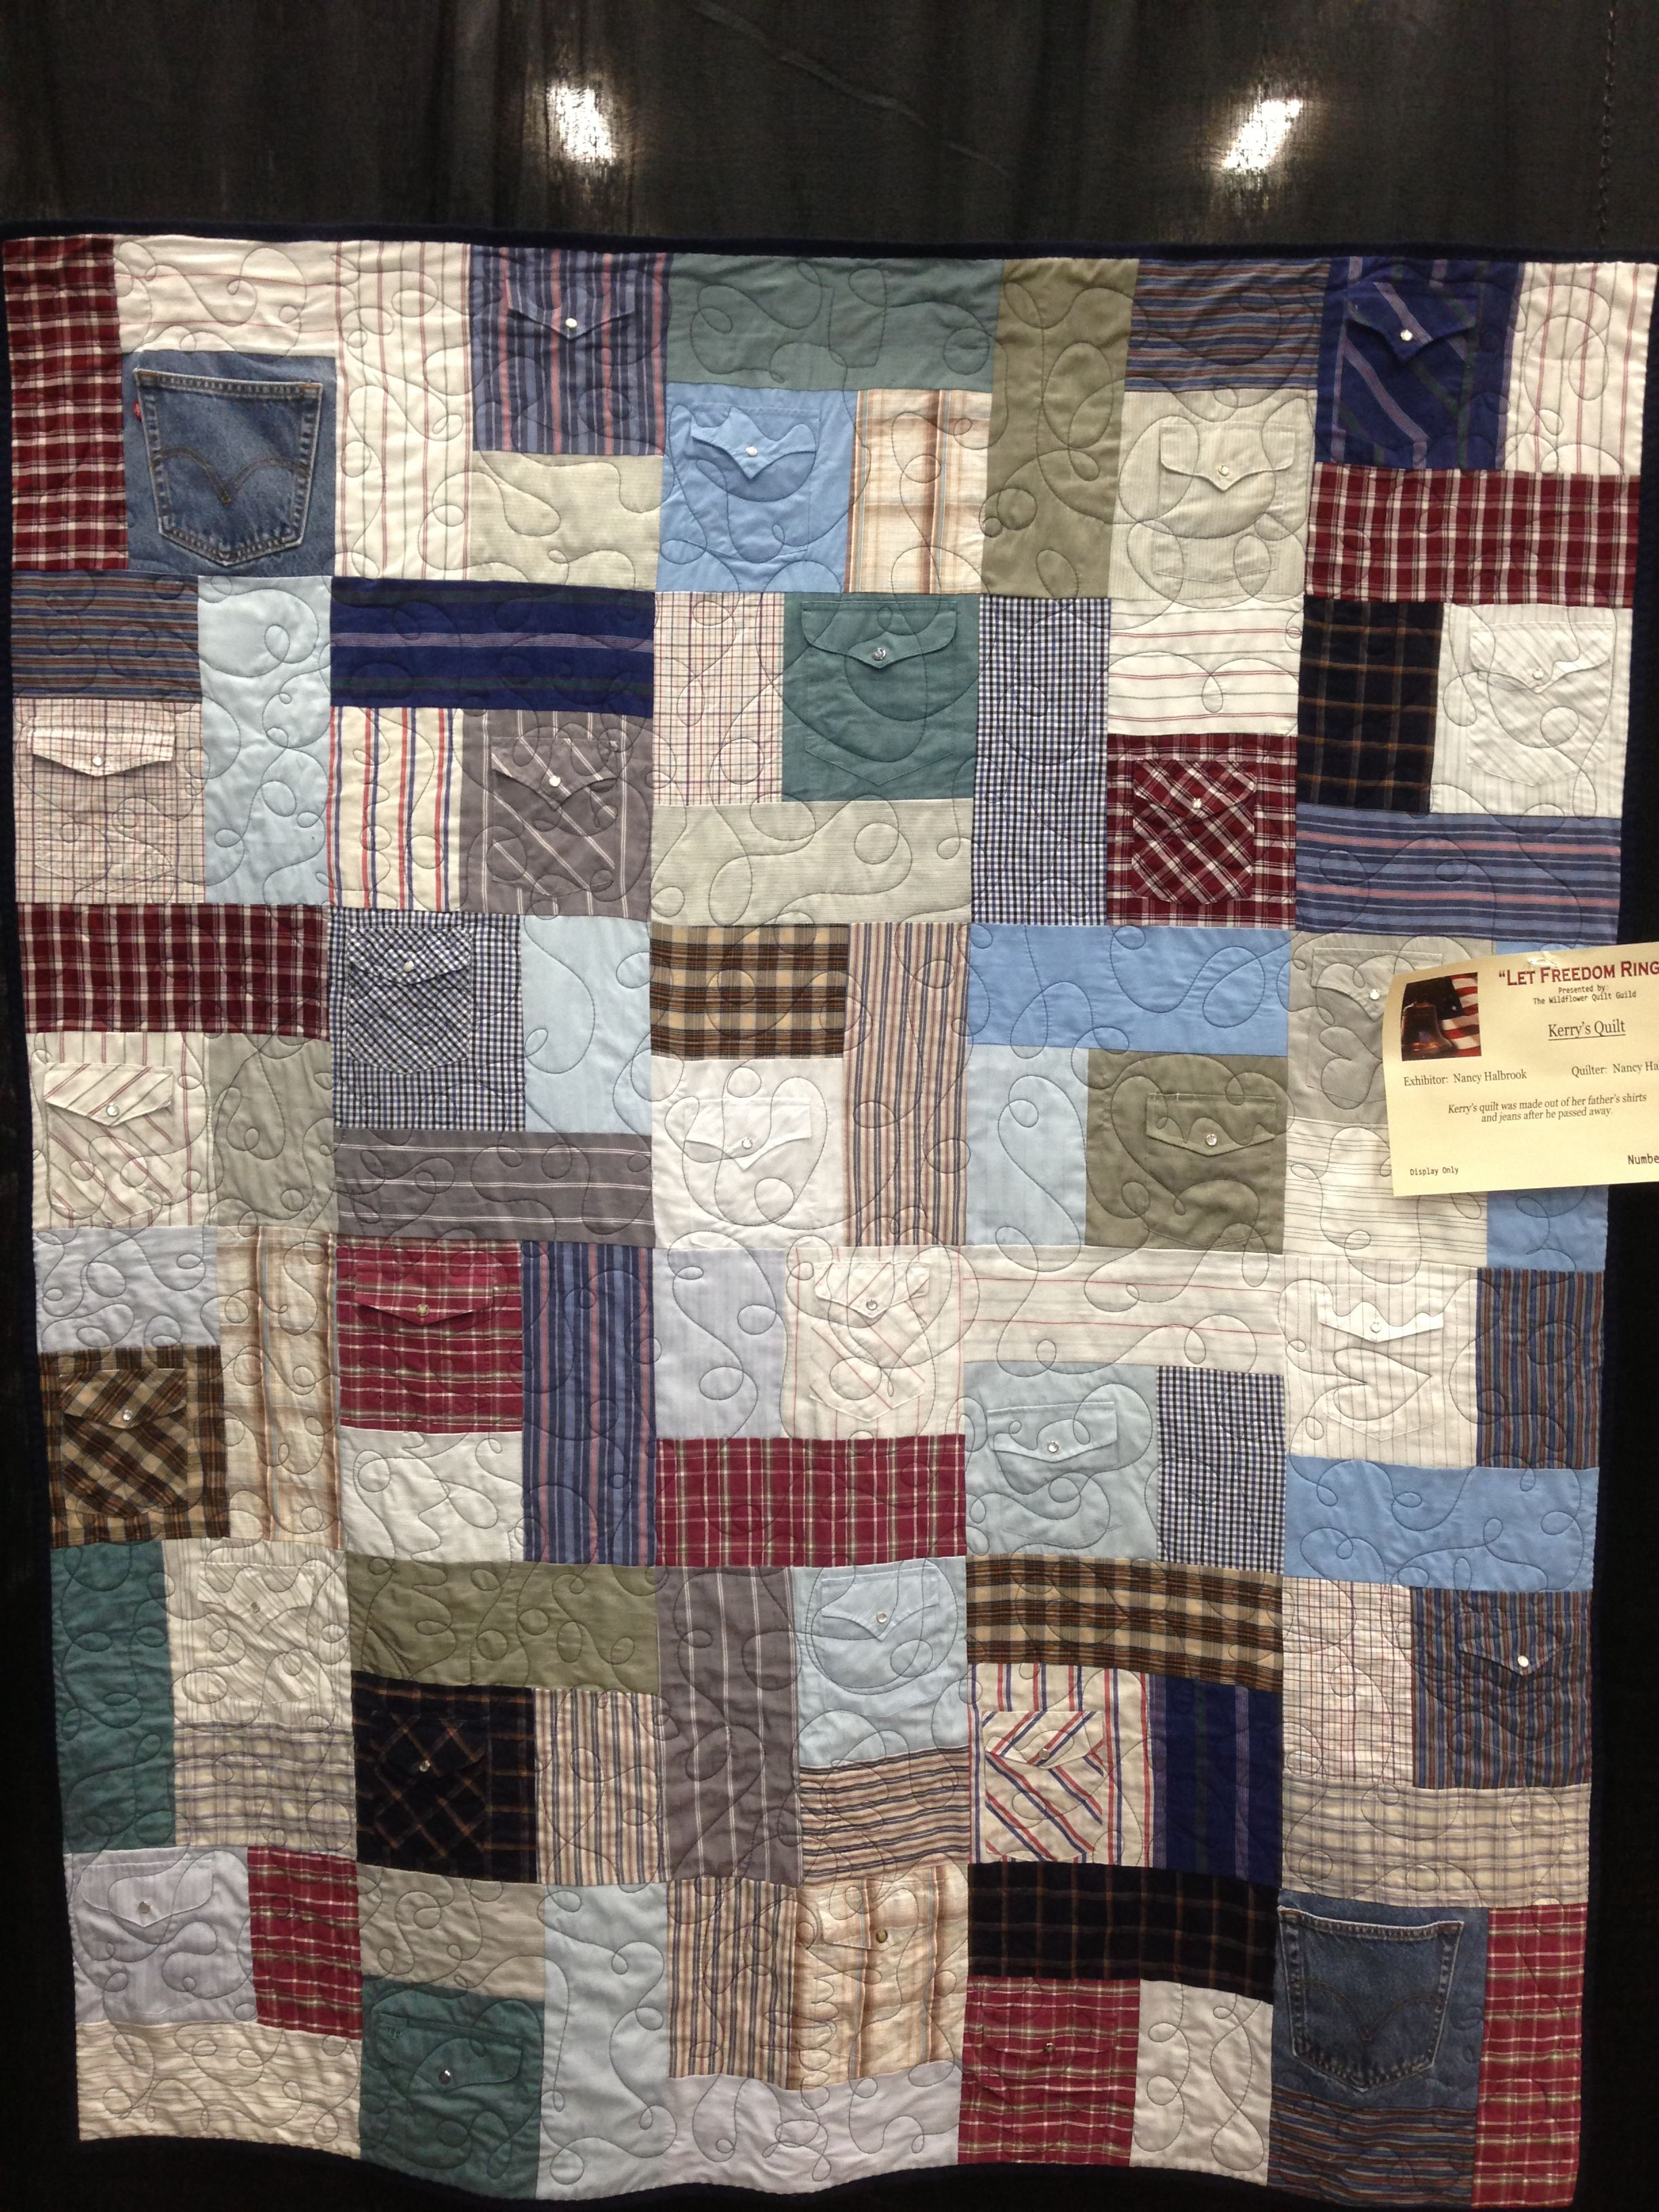 Memorial quilt from Tshirts b6c0c4f61